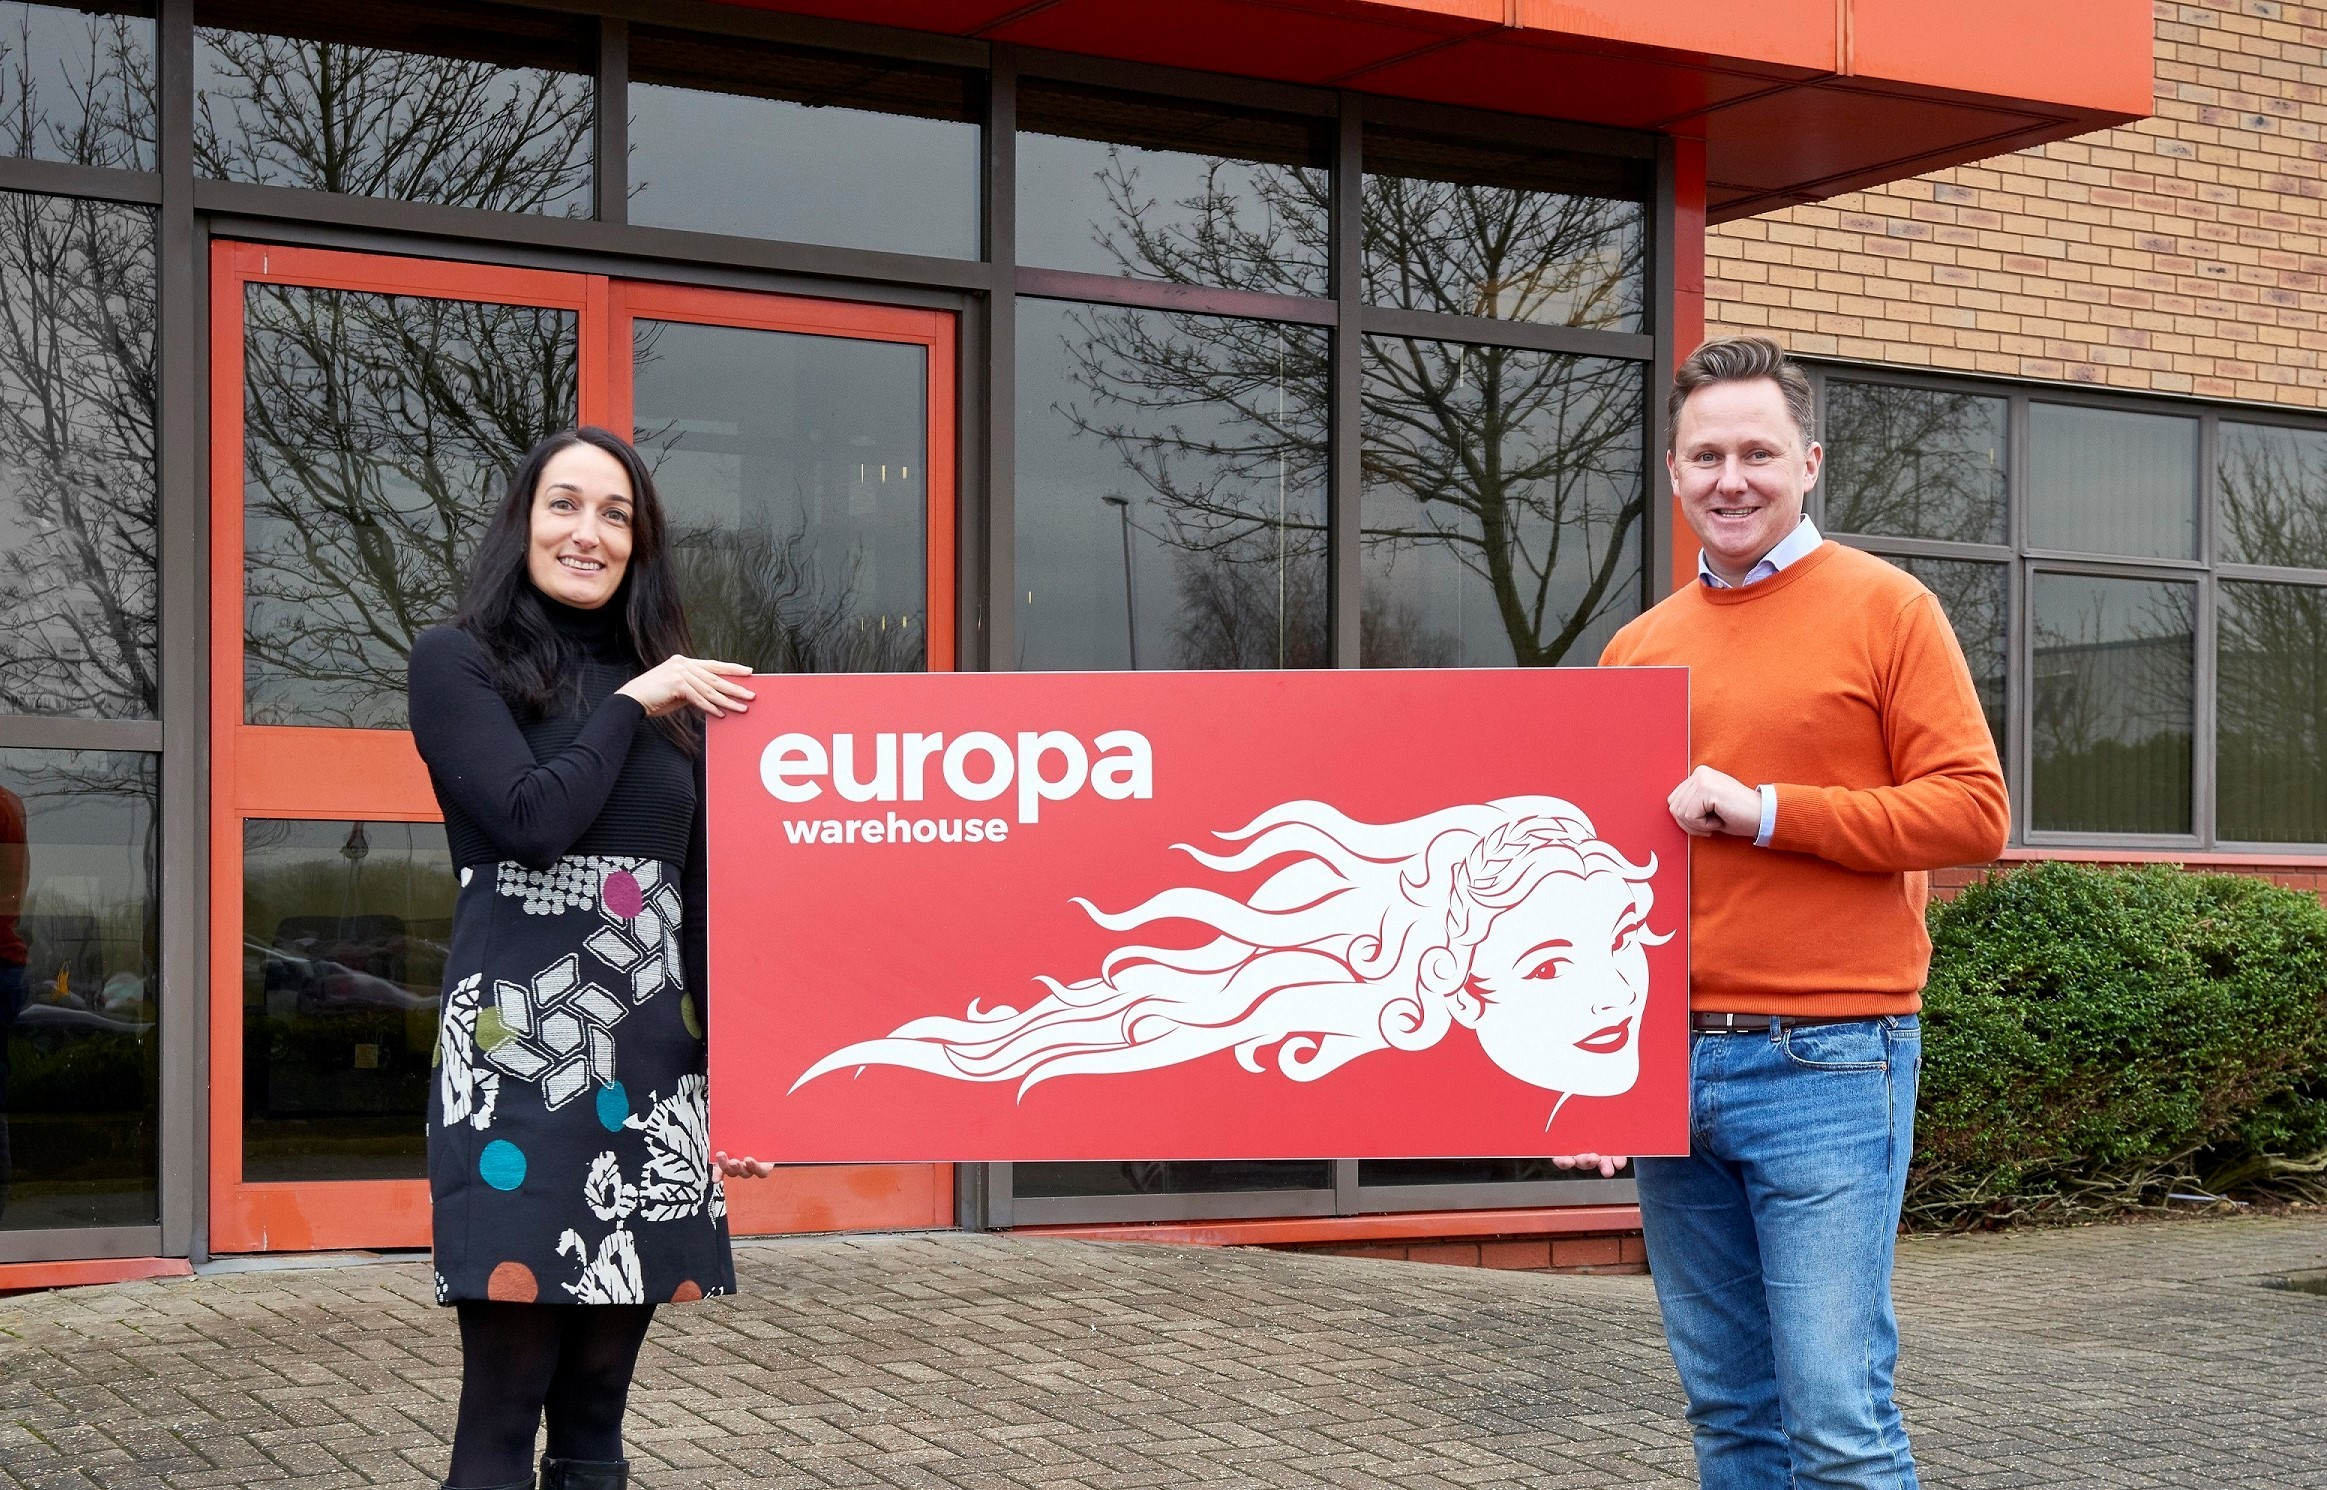 Europa Menzies L-R Maria Torrent-March, Europa Warehouse Director, and Andrew Baxter, Managing Director of Europa